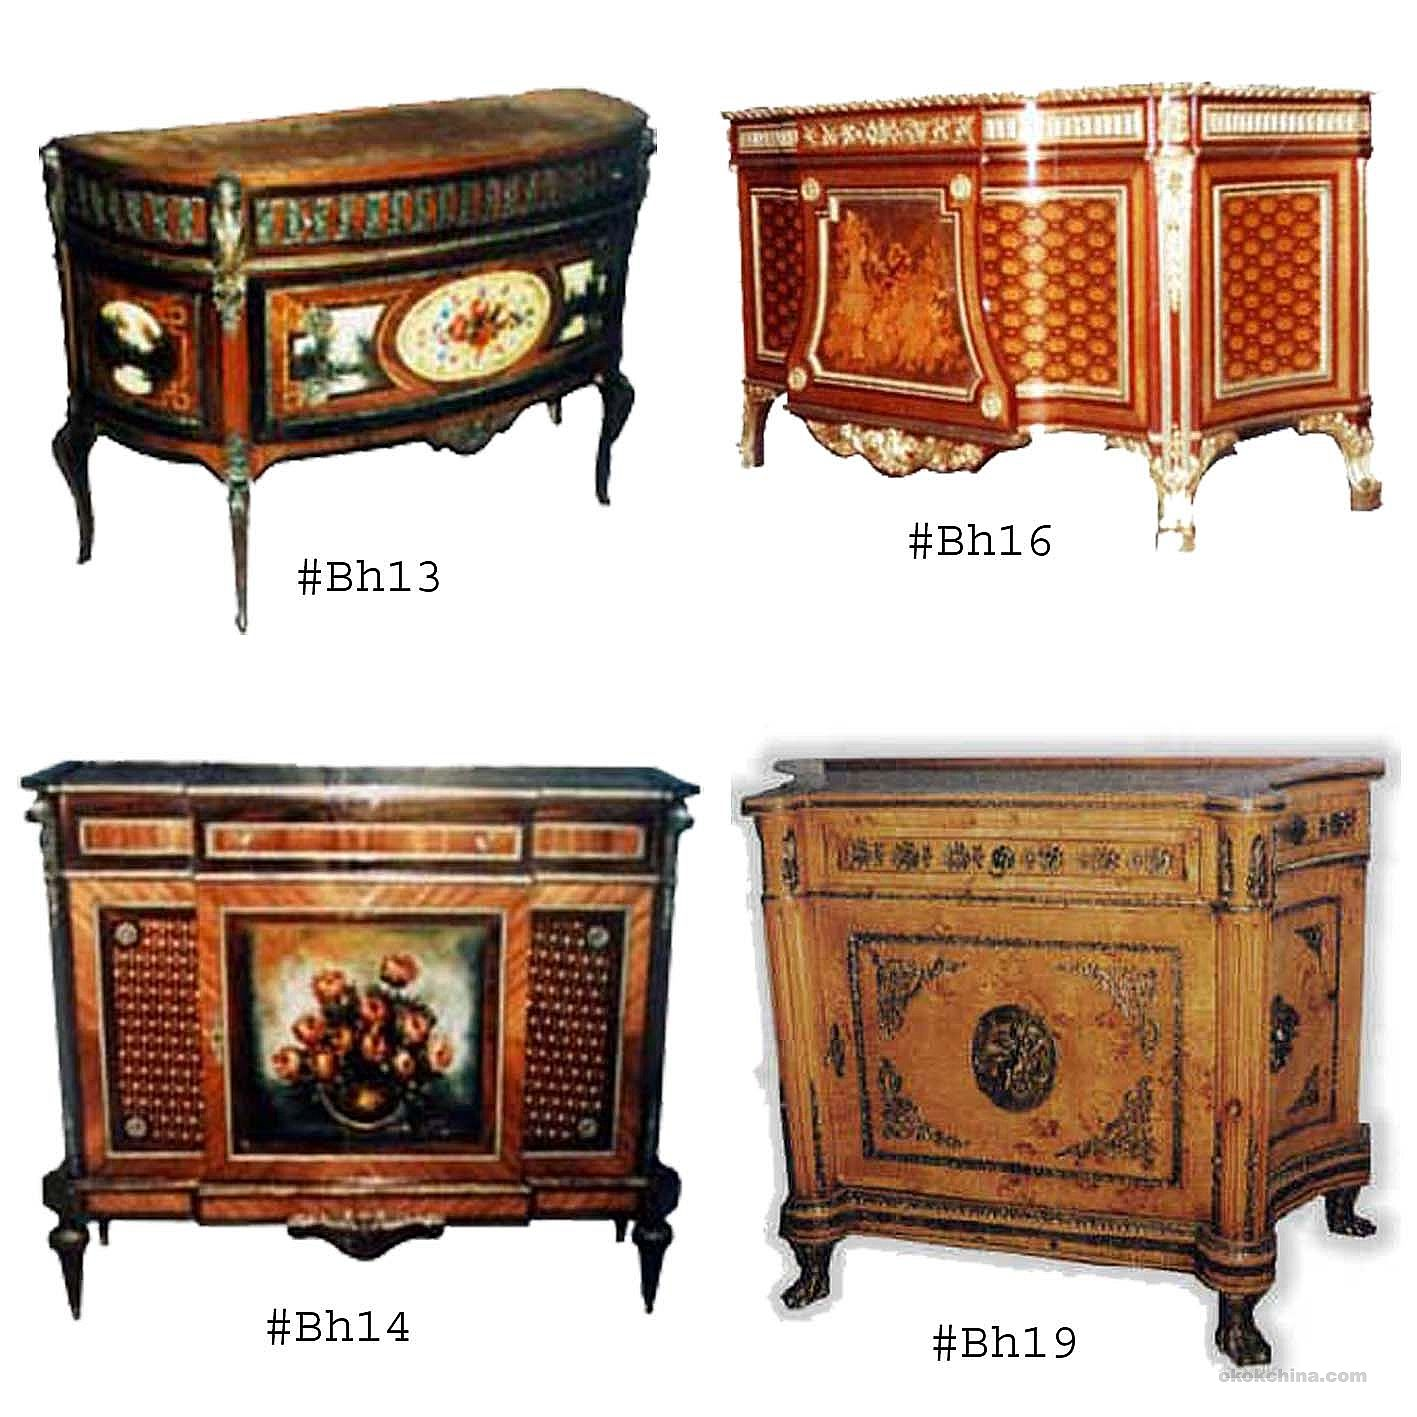 Lovely Antique Furniture | Antique Furniture Reproduction (Bahut)